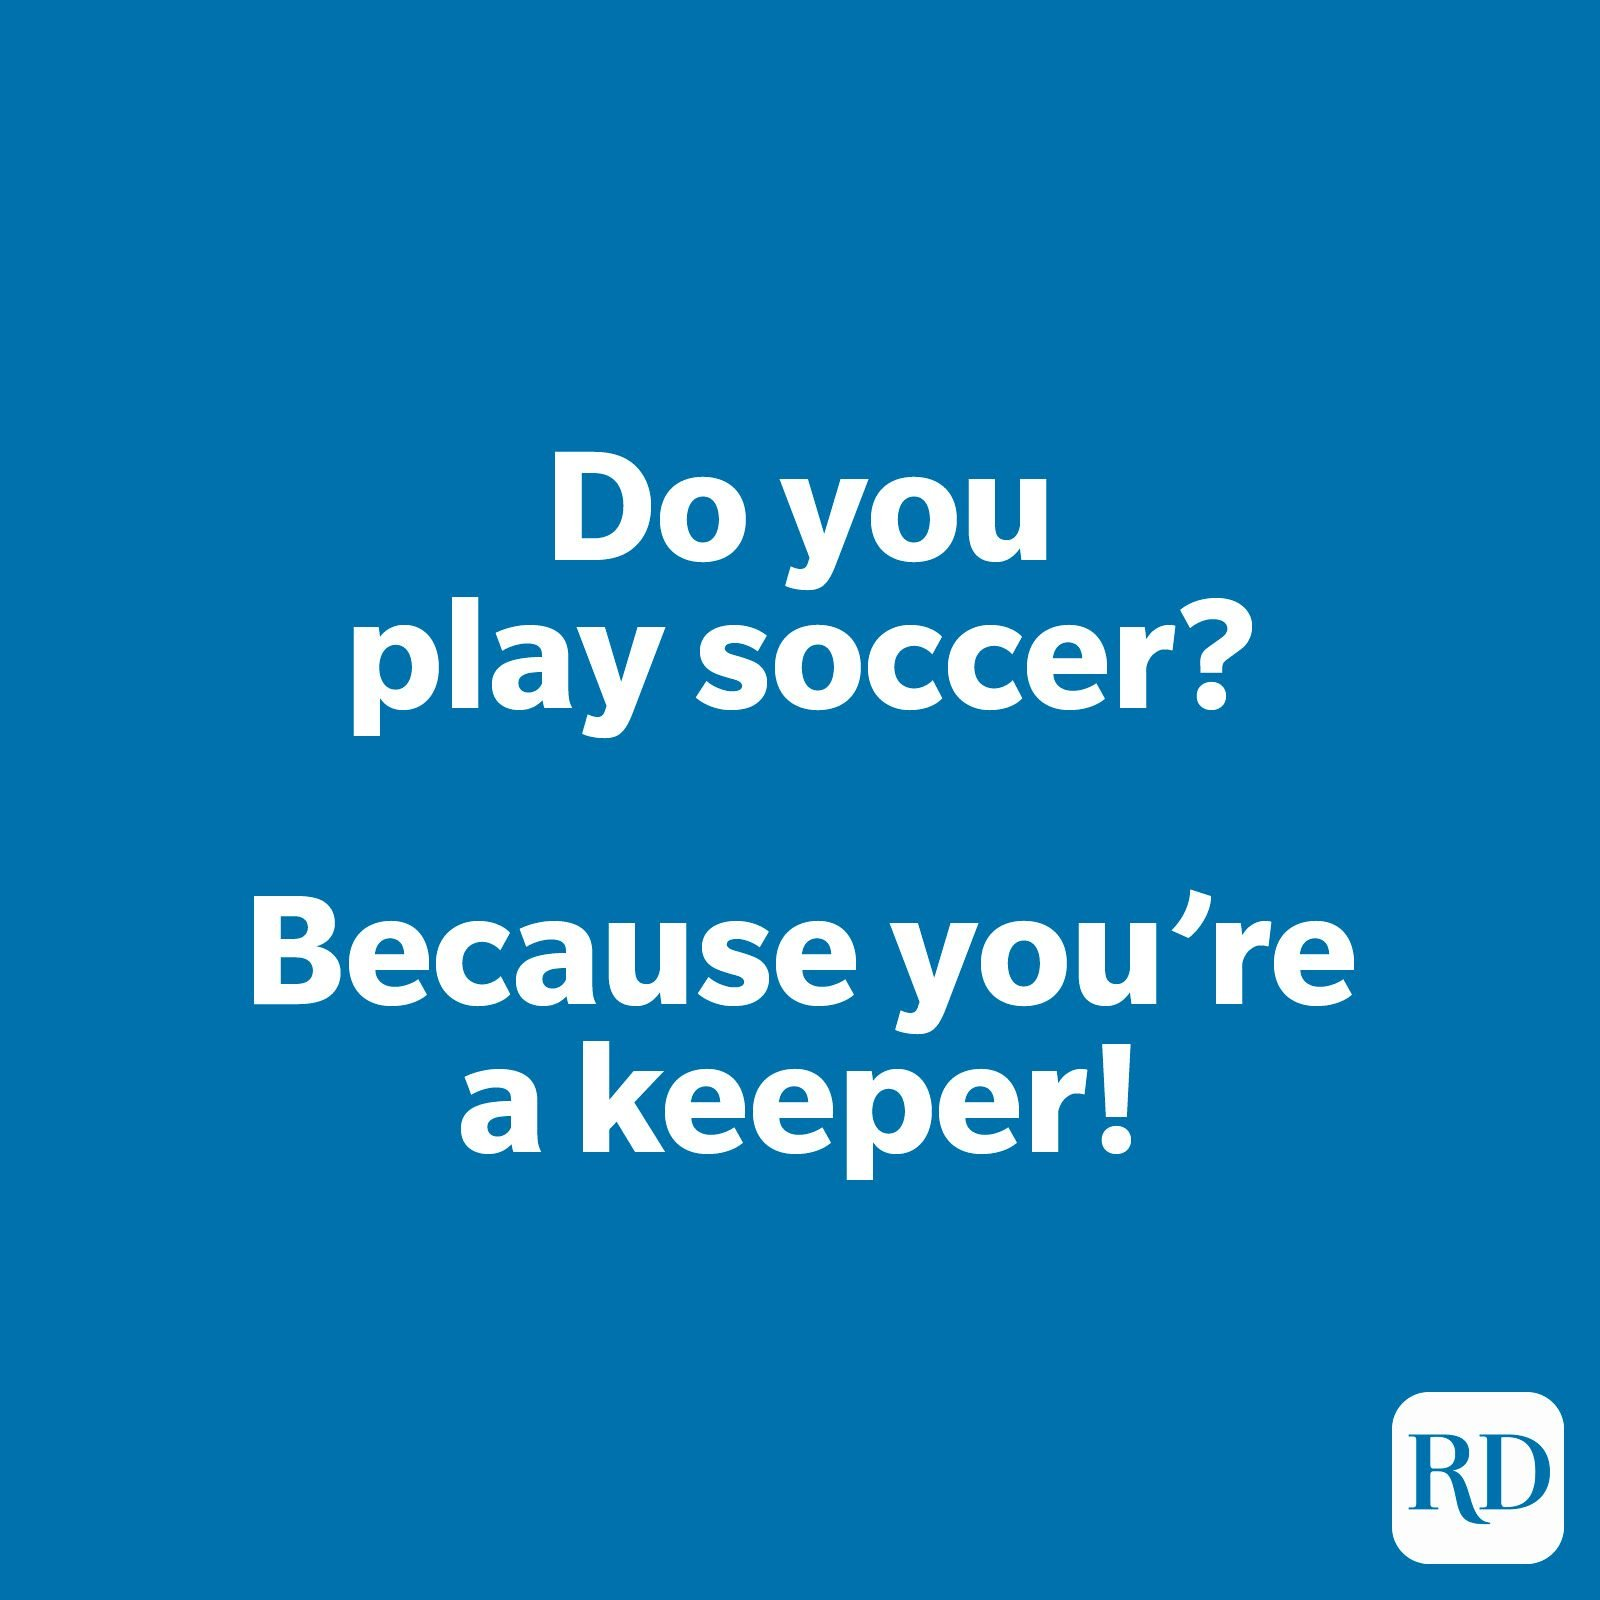 Do you play soccer? Because you're a keeper!